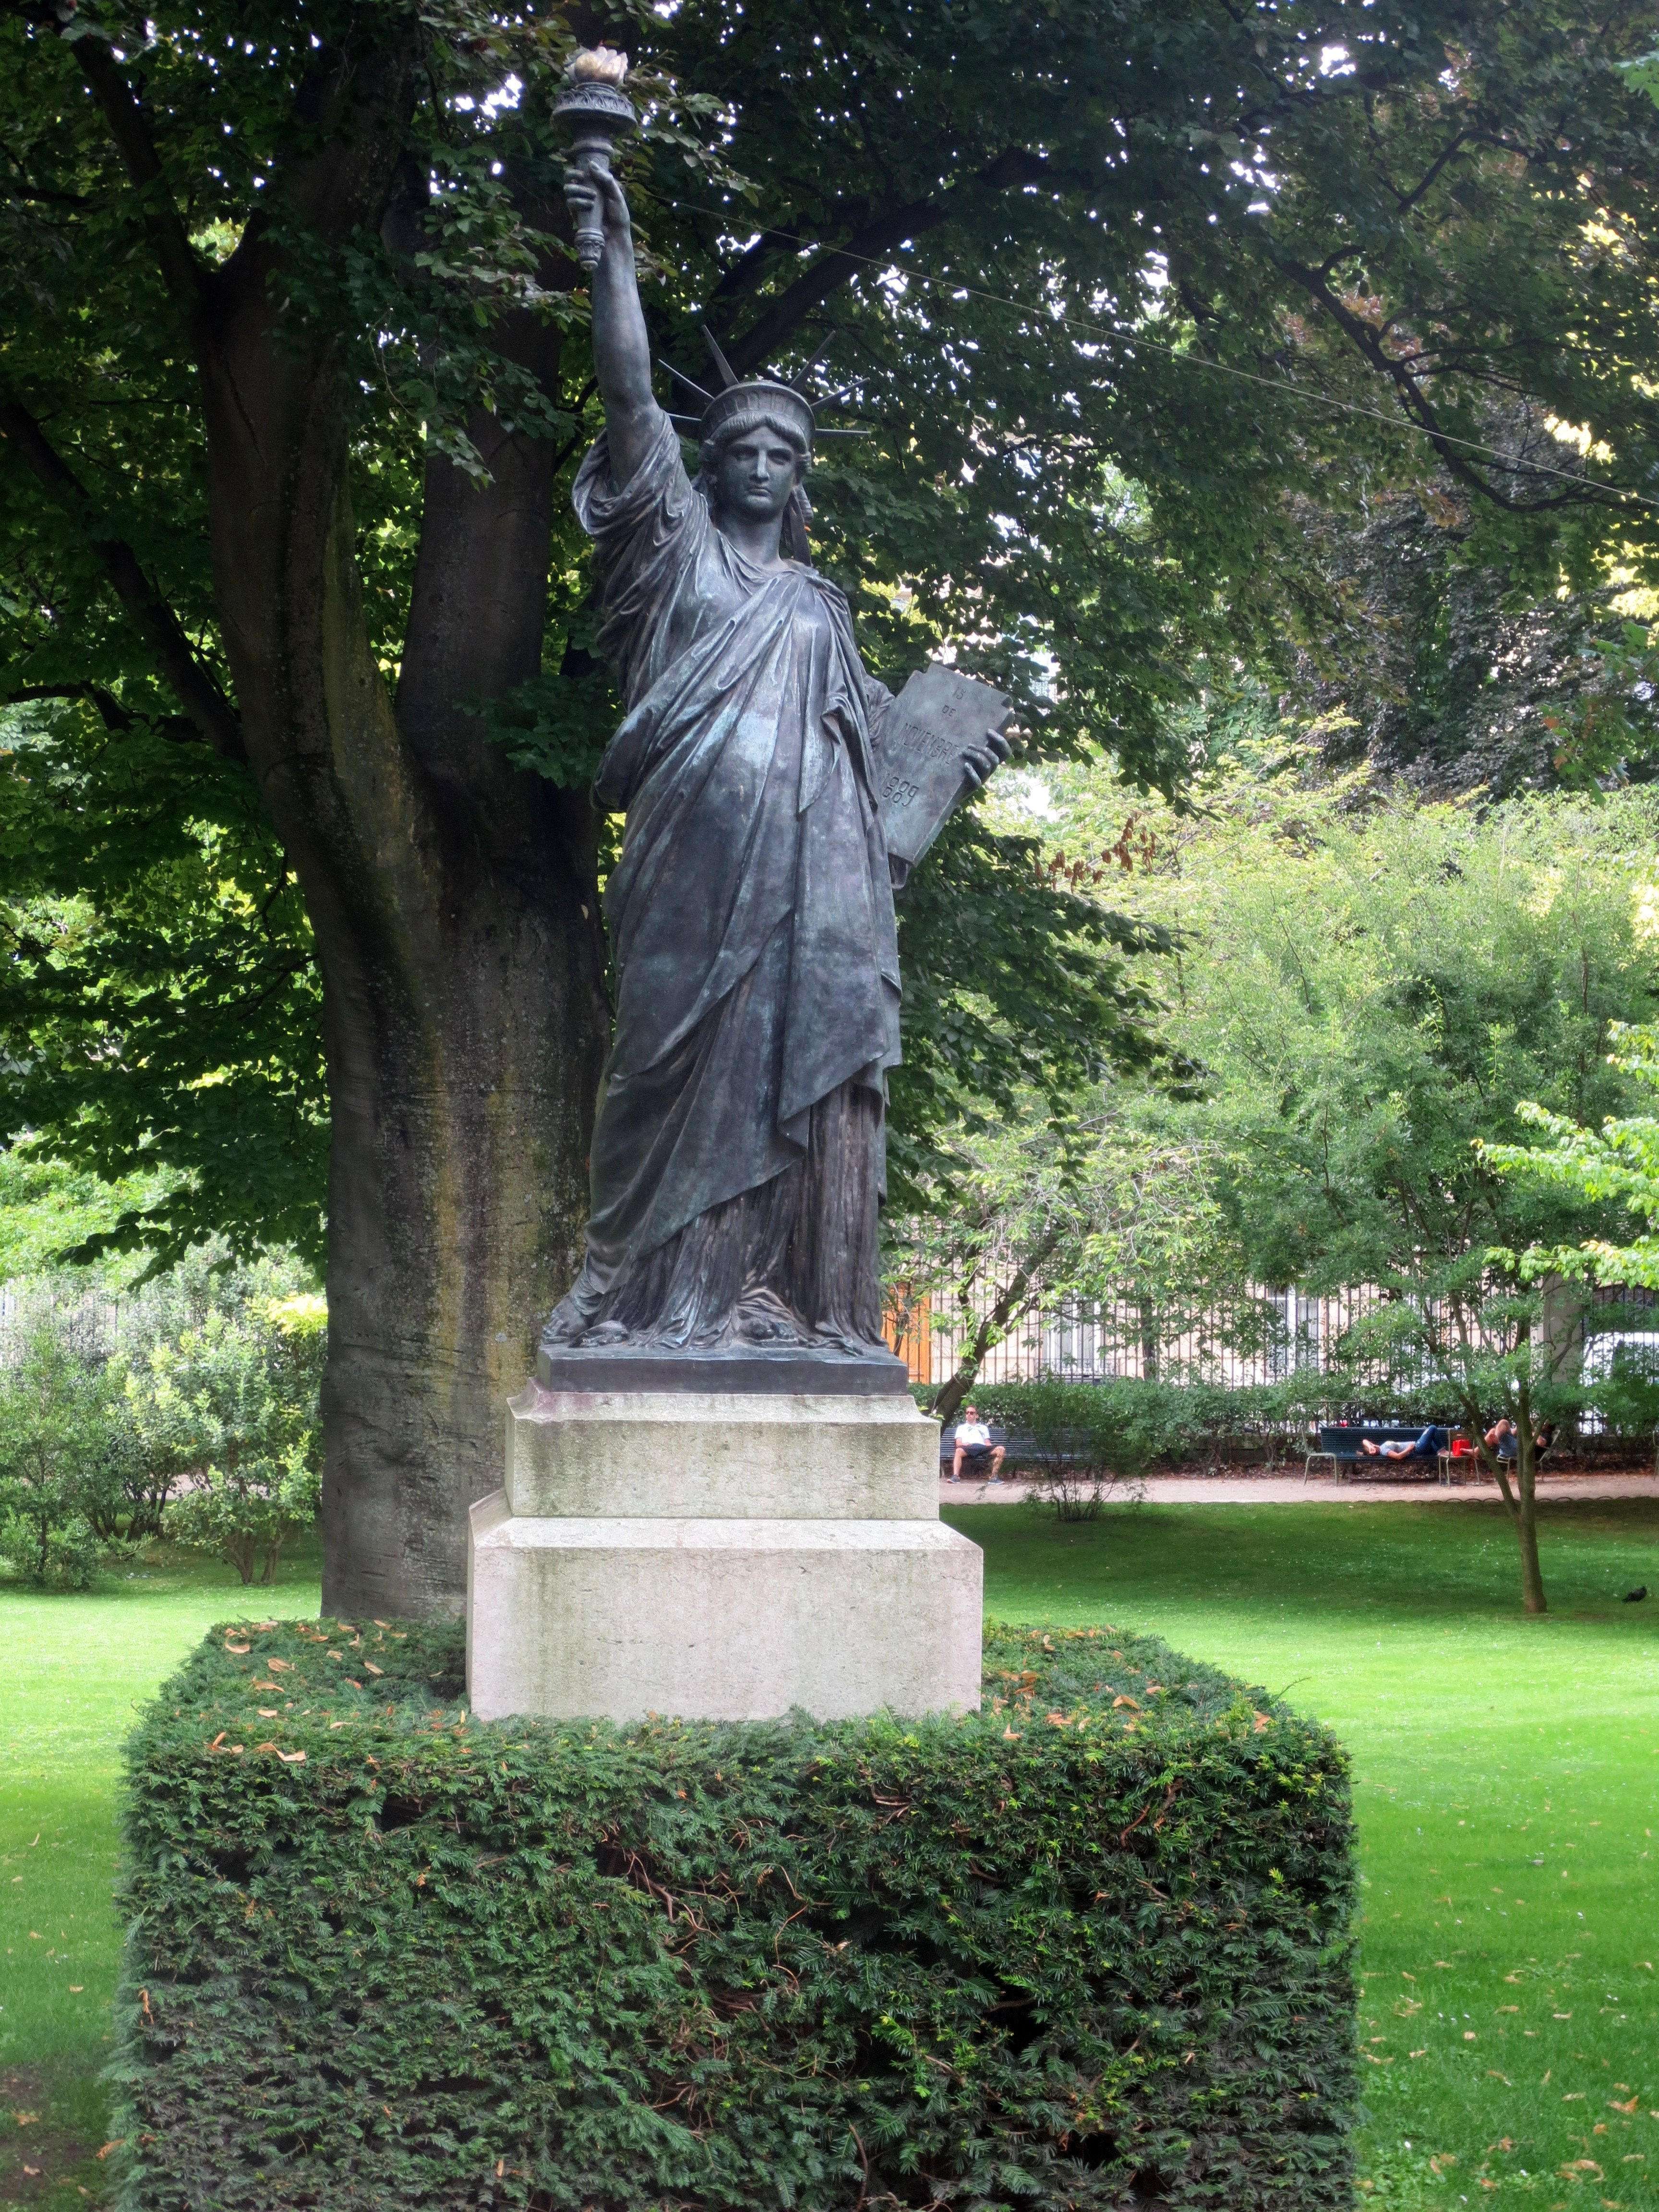 The Miniature Statues Of Liberty In Paris